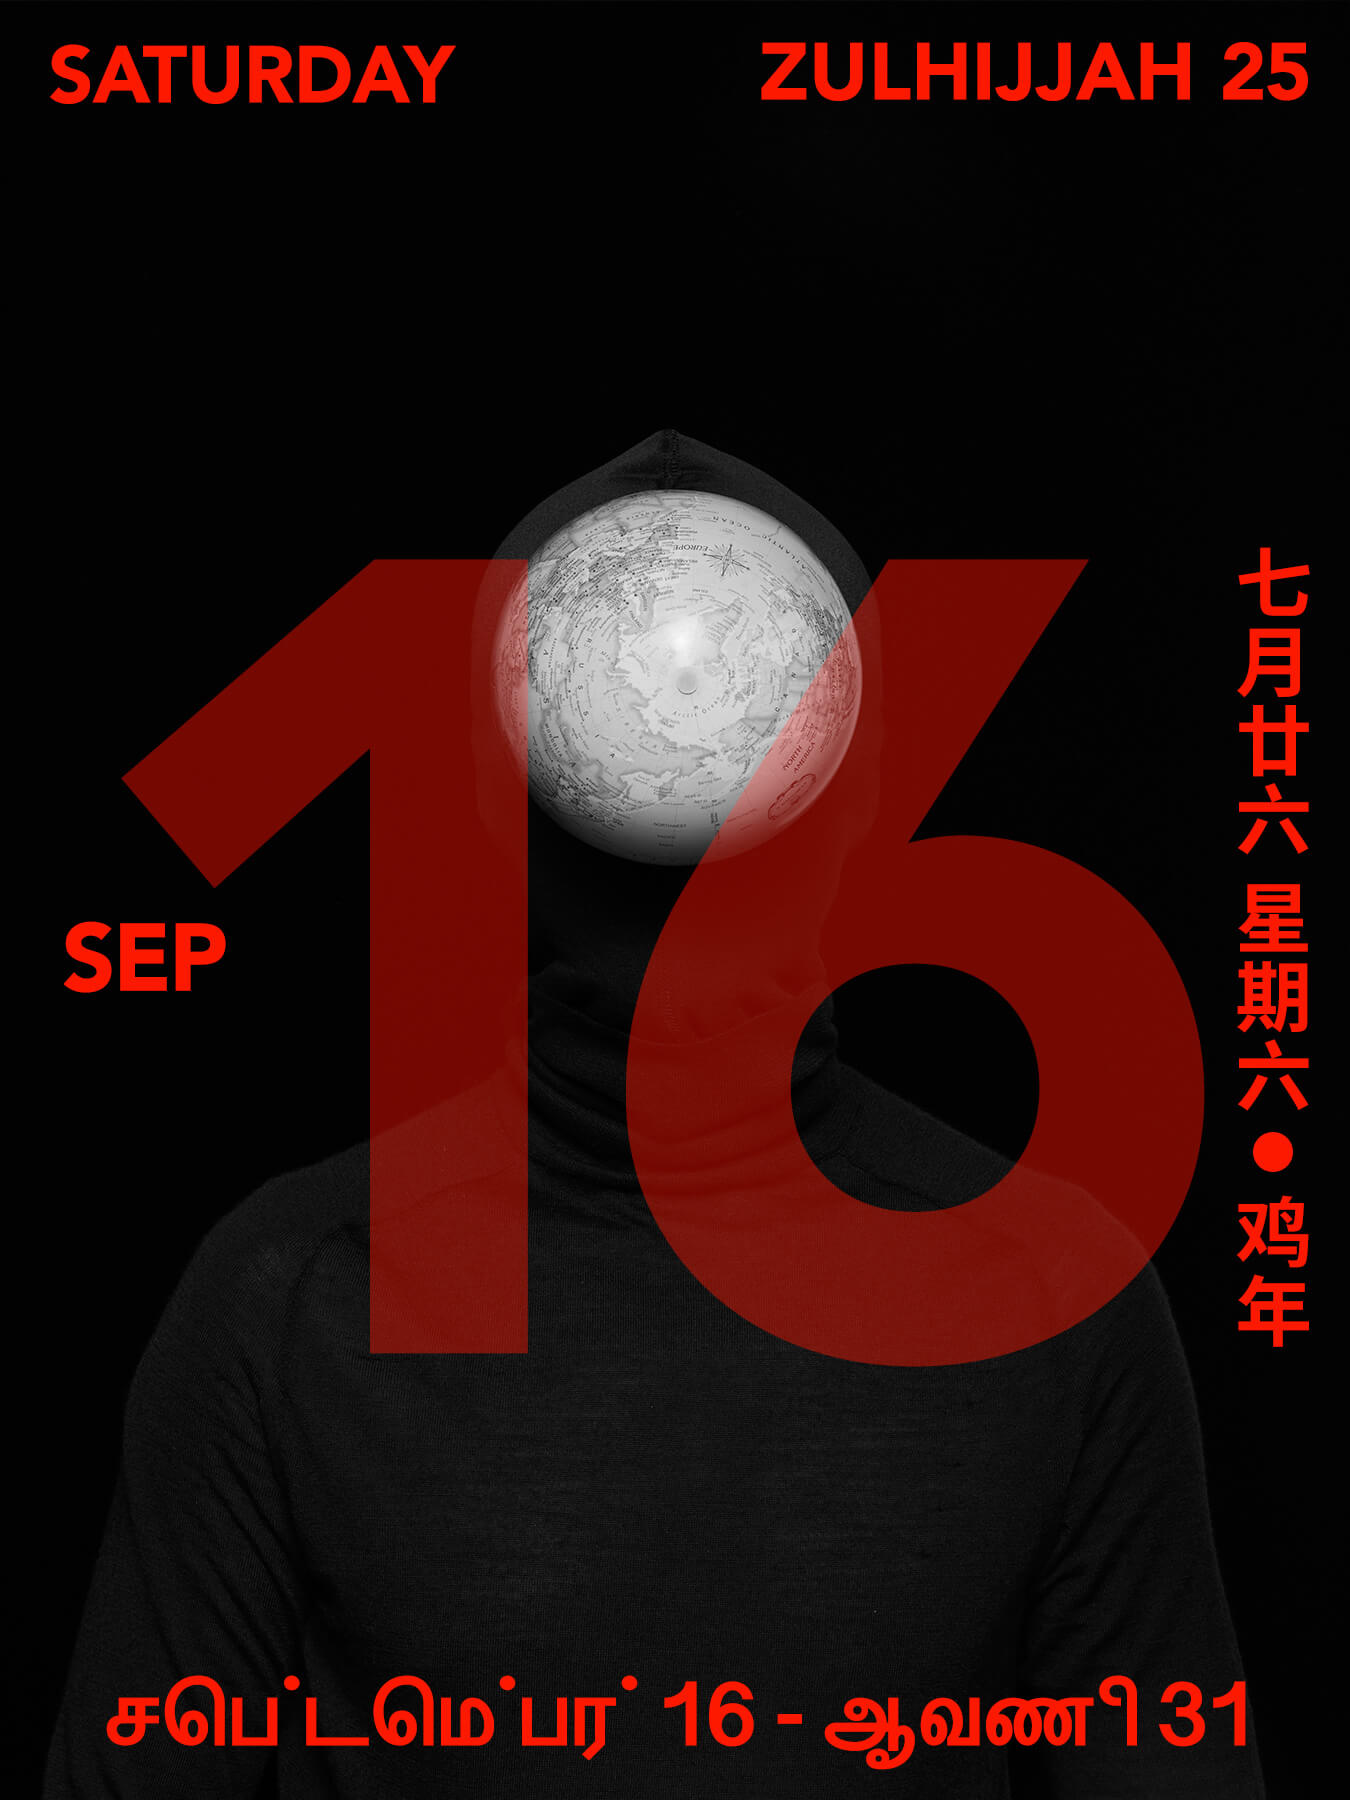 16 Sep 2017: Derong is photographed with a globe as his face/head